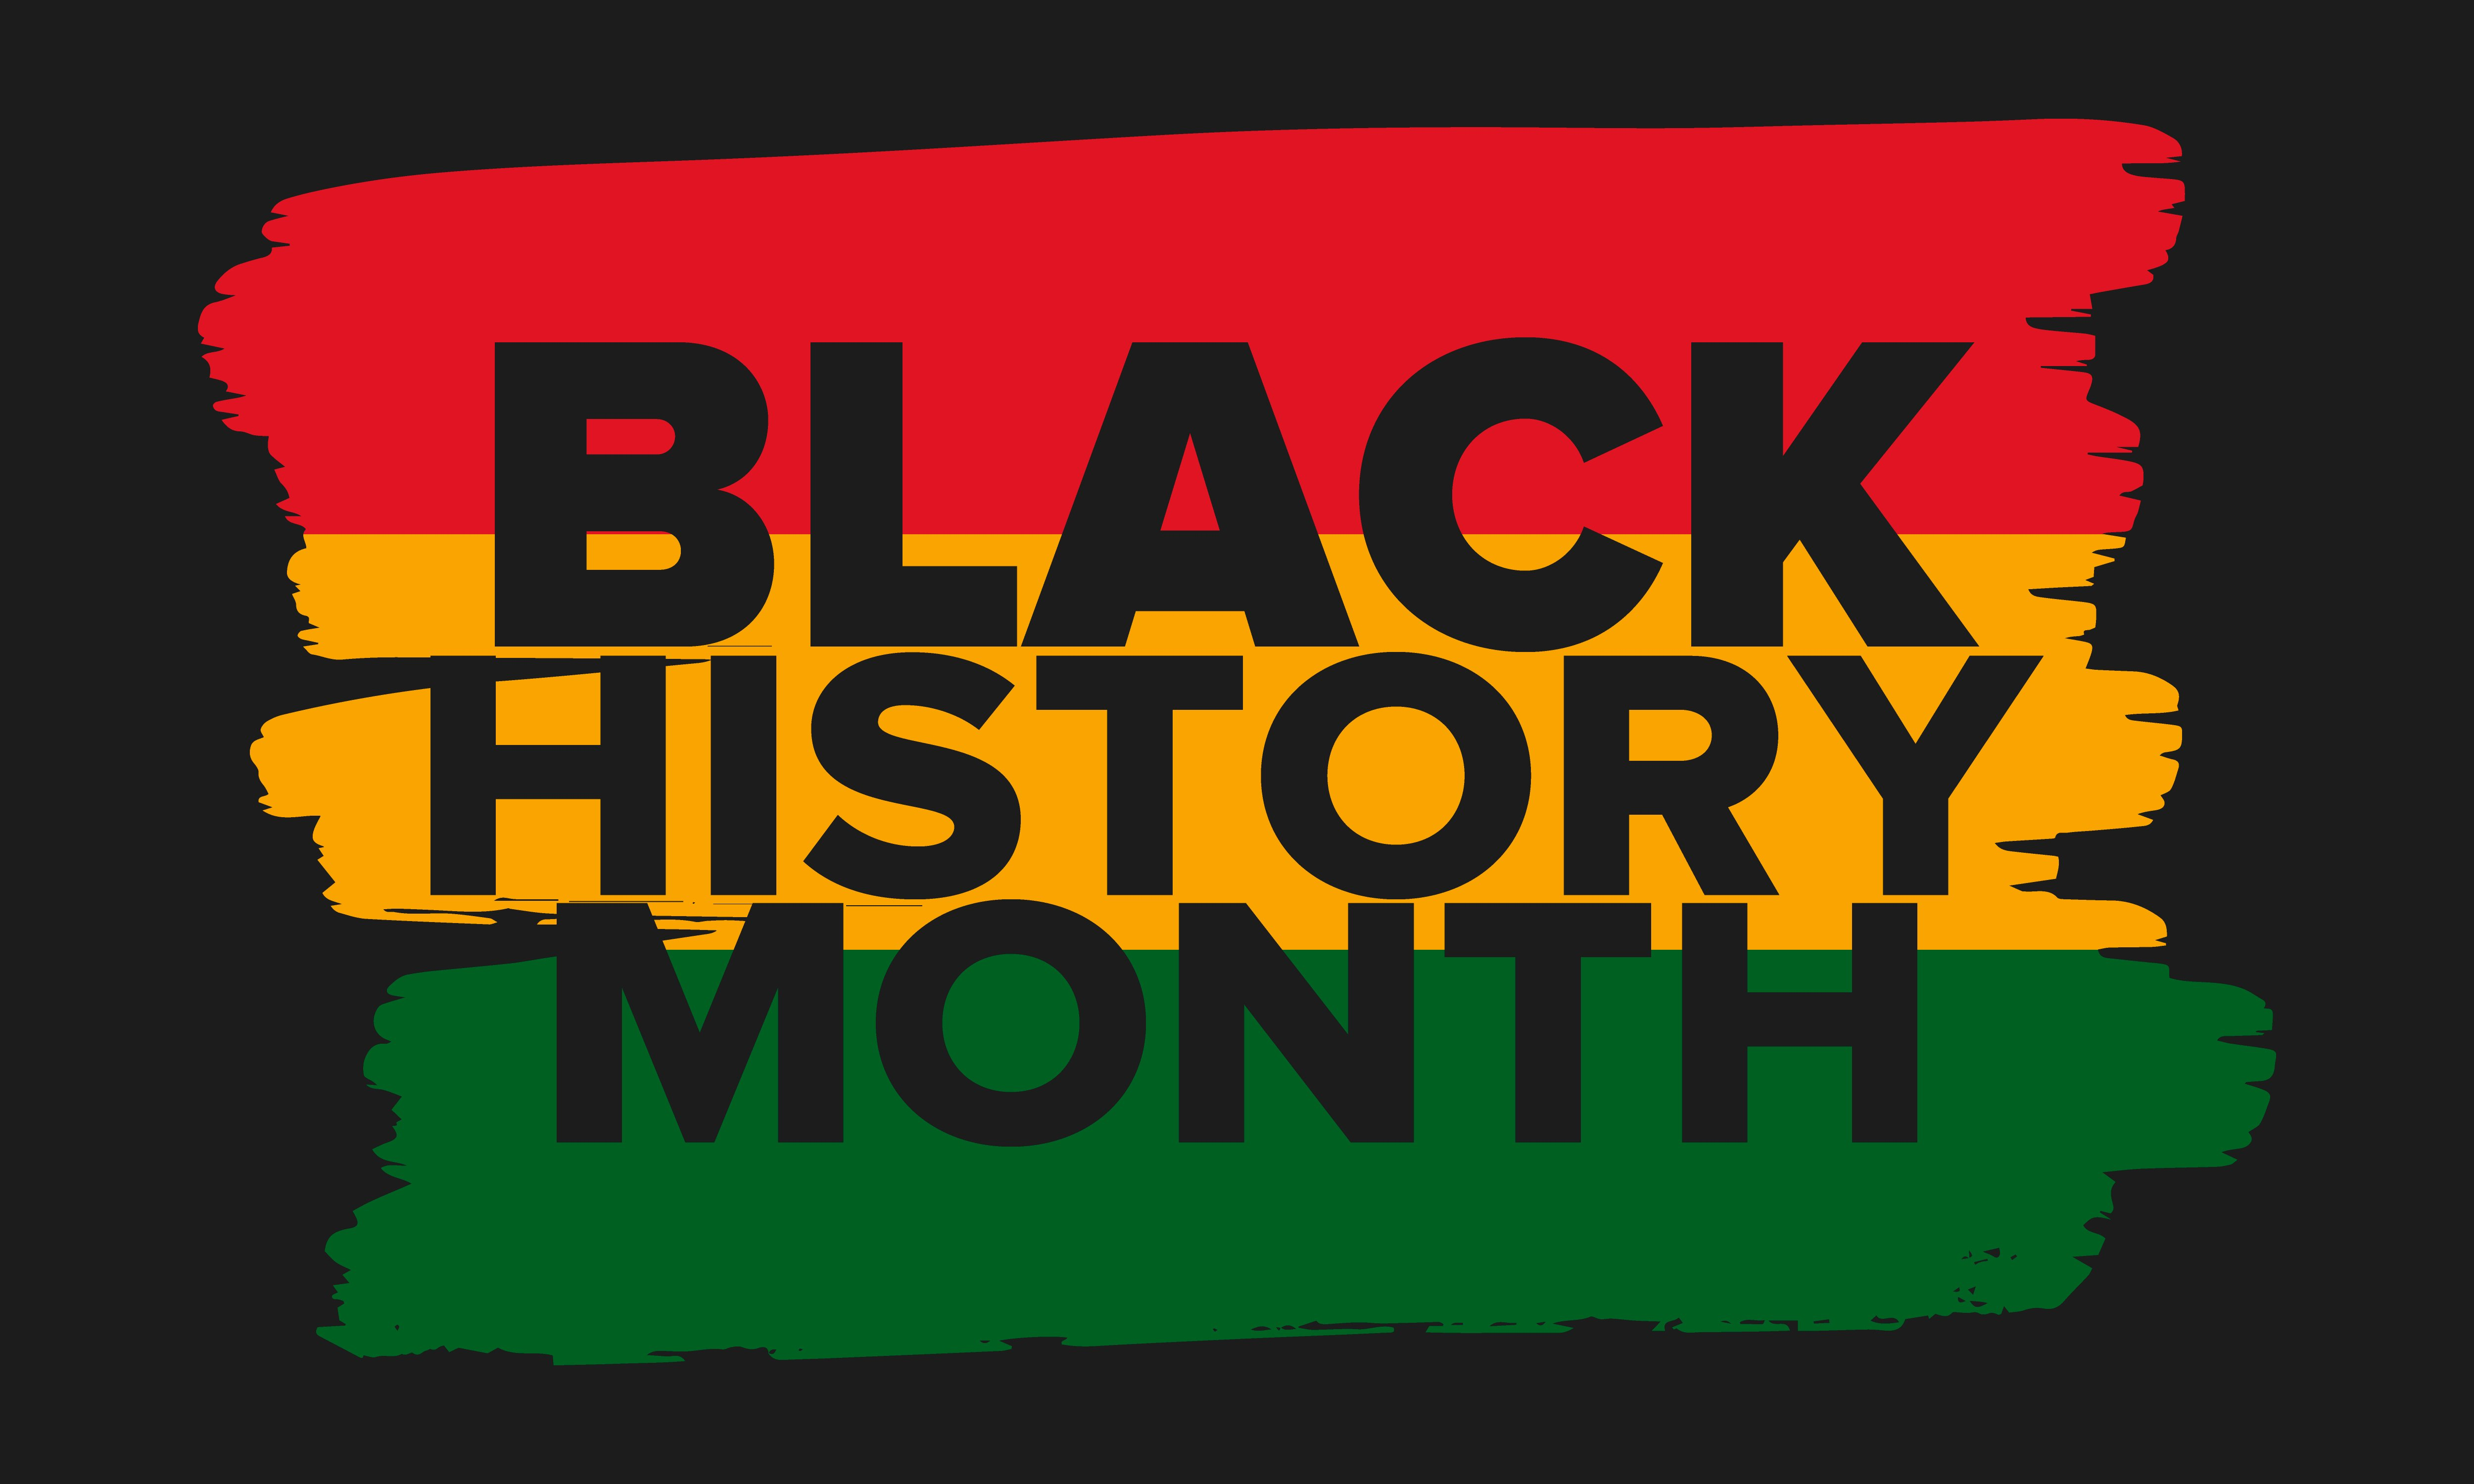 Black History Month. African American History. Celebrated annual. In February in United States and Canada. In October in Great Britain  Photo: Getty Images